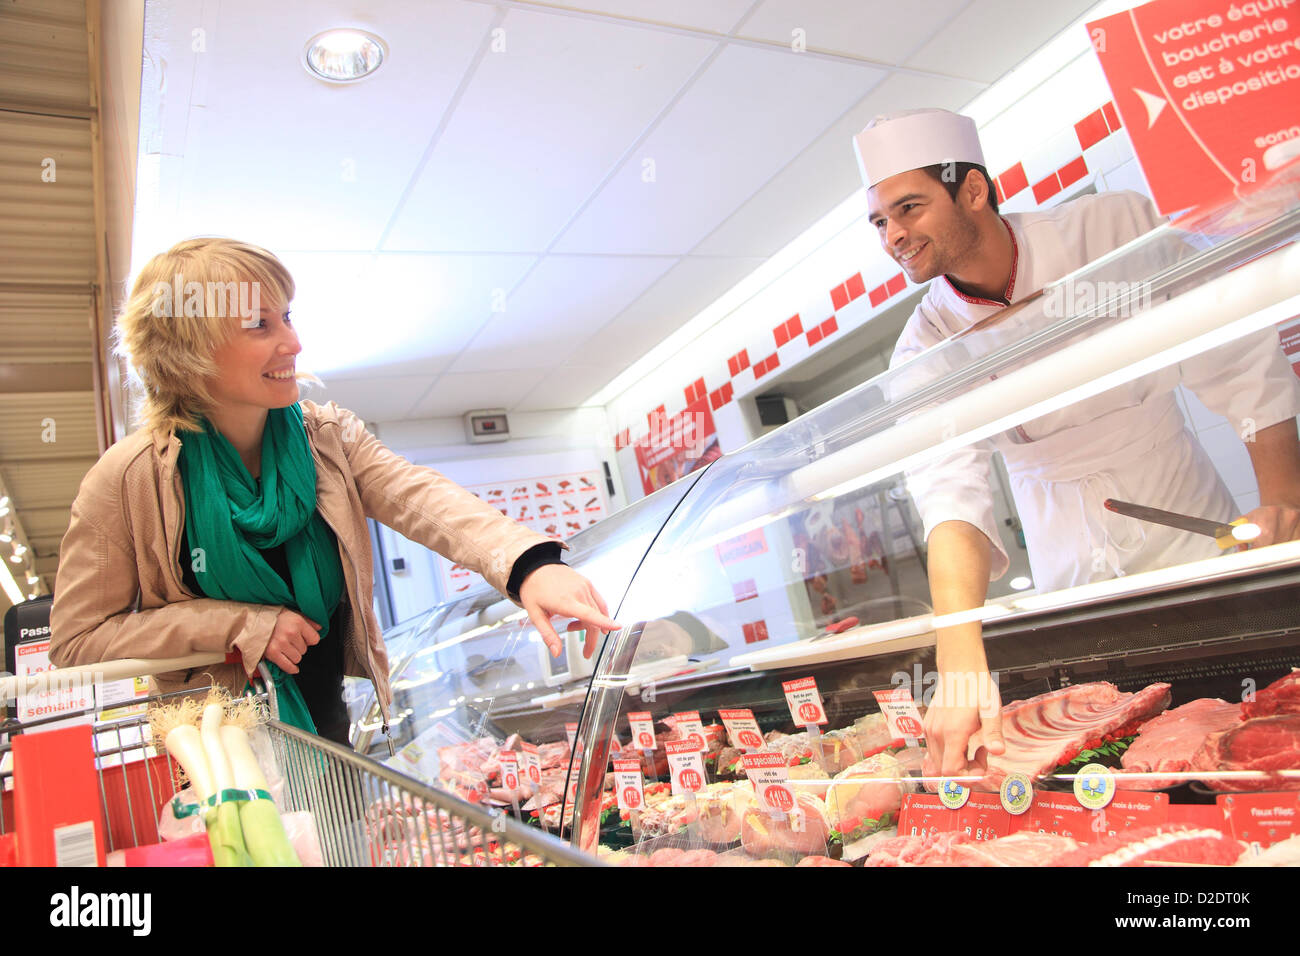 France, supermarket, customer. Stock Photo